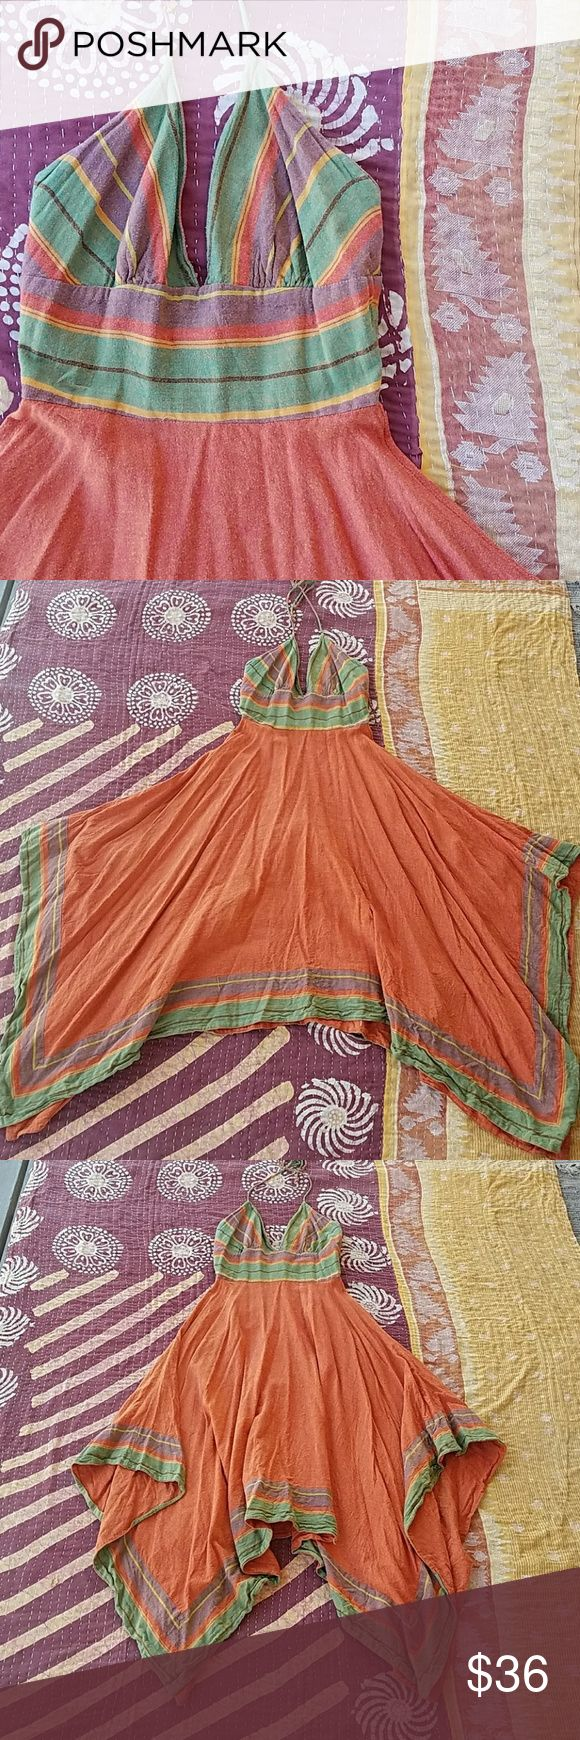 Delia*s Orange Halter Asymmetrical Festival Dress Orange festival halter dress Handkerchief hem  Deep v halter style neckline back zipper Full skirt with asymmetrical hem and colorful border Soft woven fabric perfect for outdoor festivals Made by Delia*s size 3/4 in good condition delia*s Dresses Midi